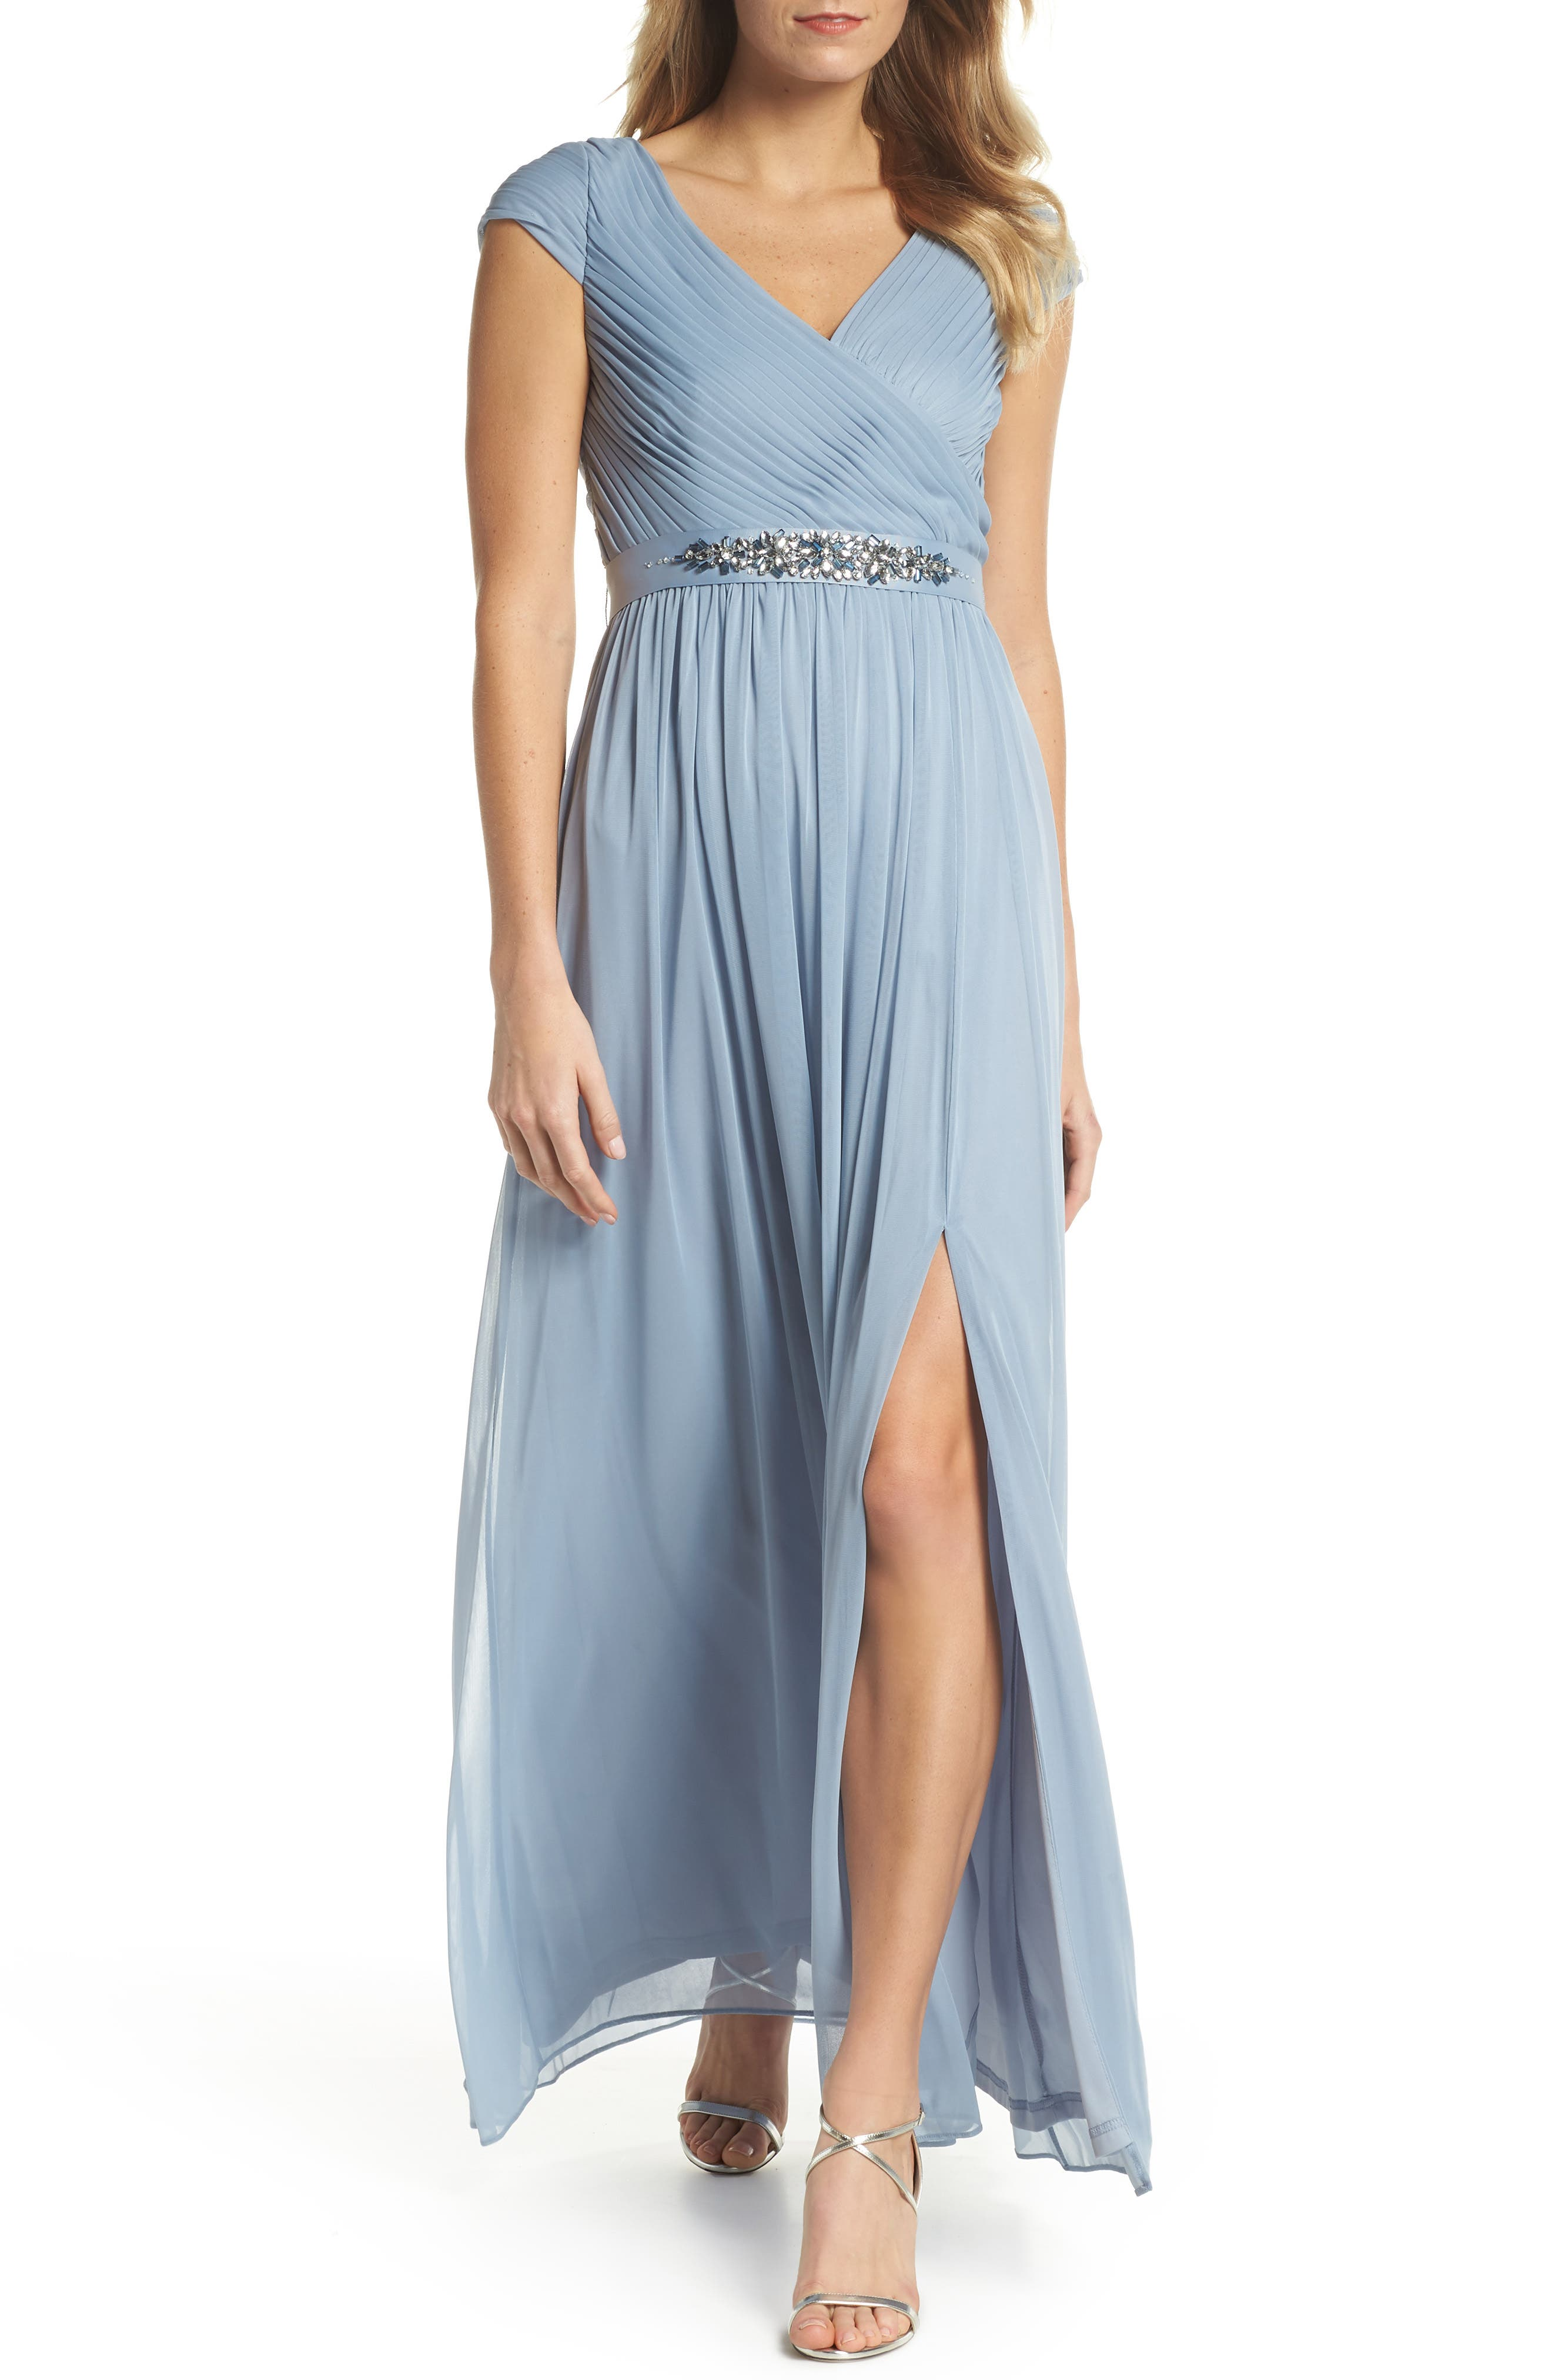 Embellished Adrianna Papell Clothing and Shoes | Nordstrom